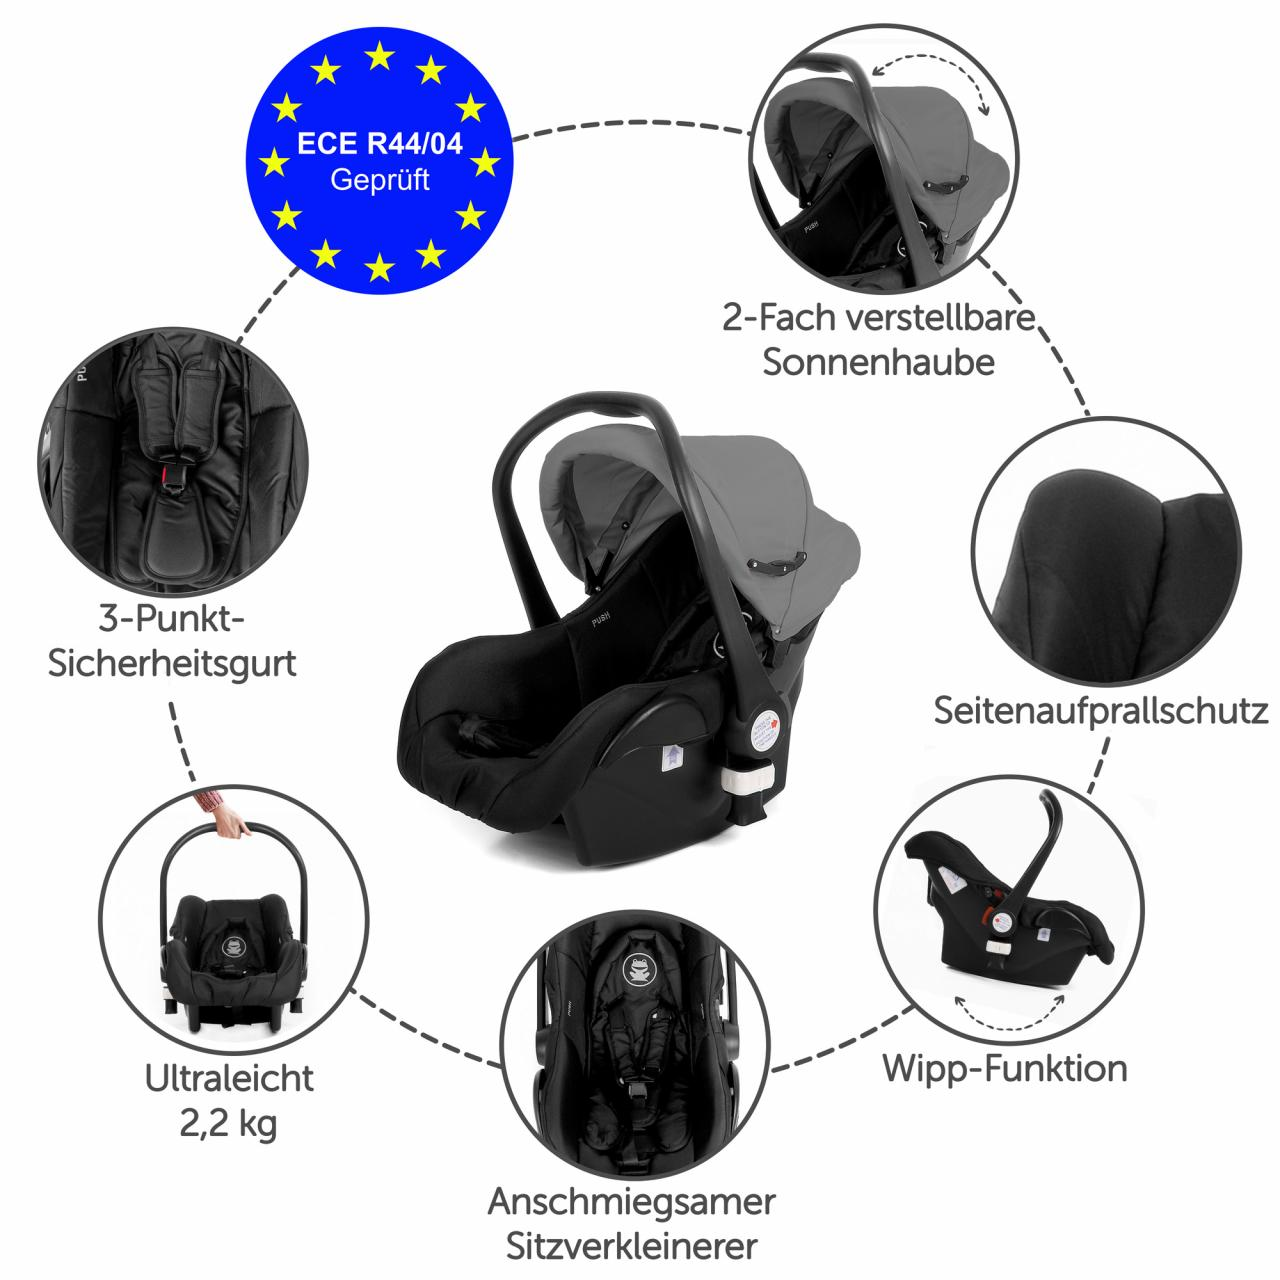 cocoon autositz babyschale auto babysitz kindersitz baby. Black Bedroom Furniture Sets. Home Design Ideas